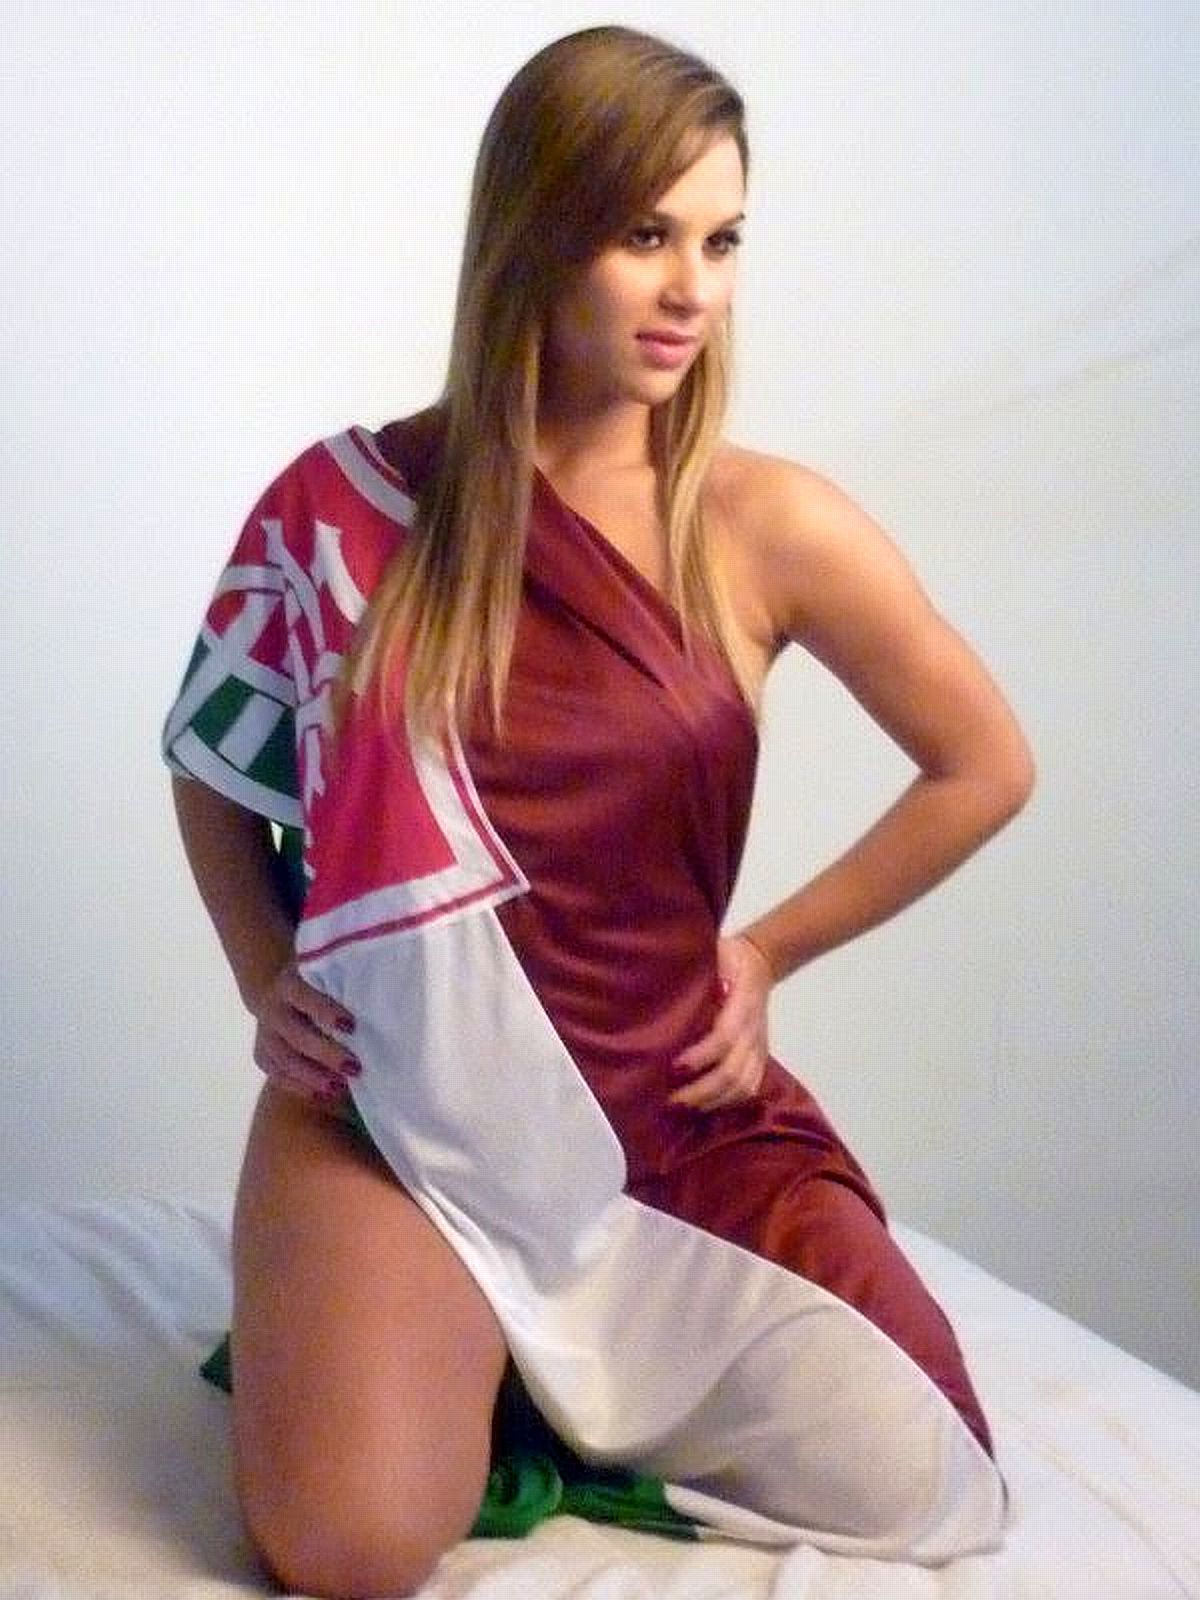 Musa Do Fluminense Football Club  Ketlyn Brito